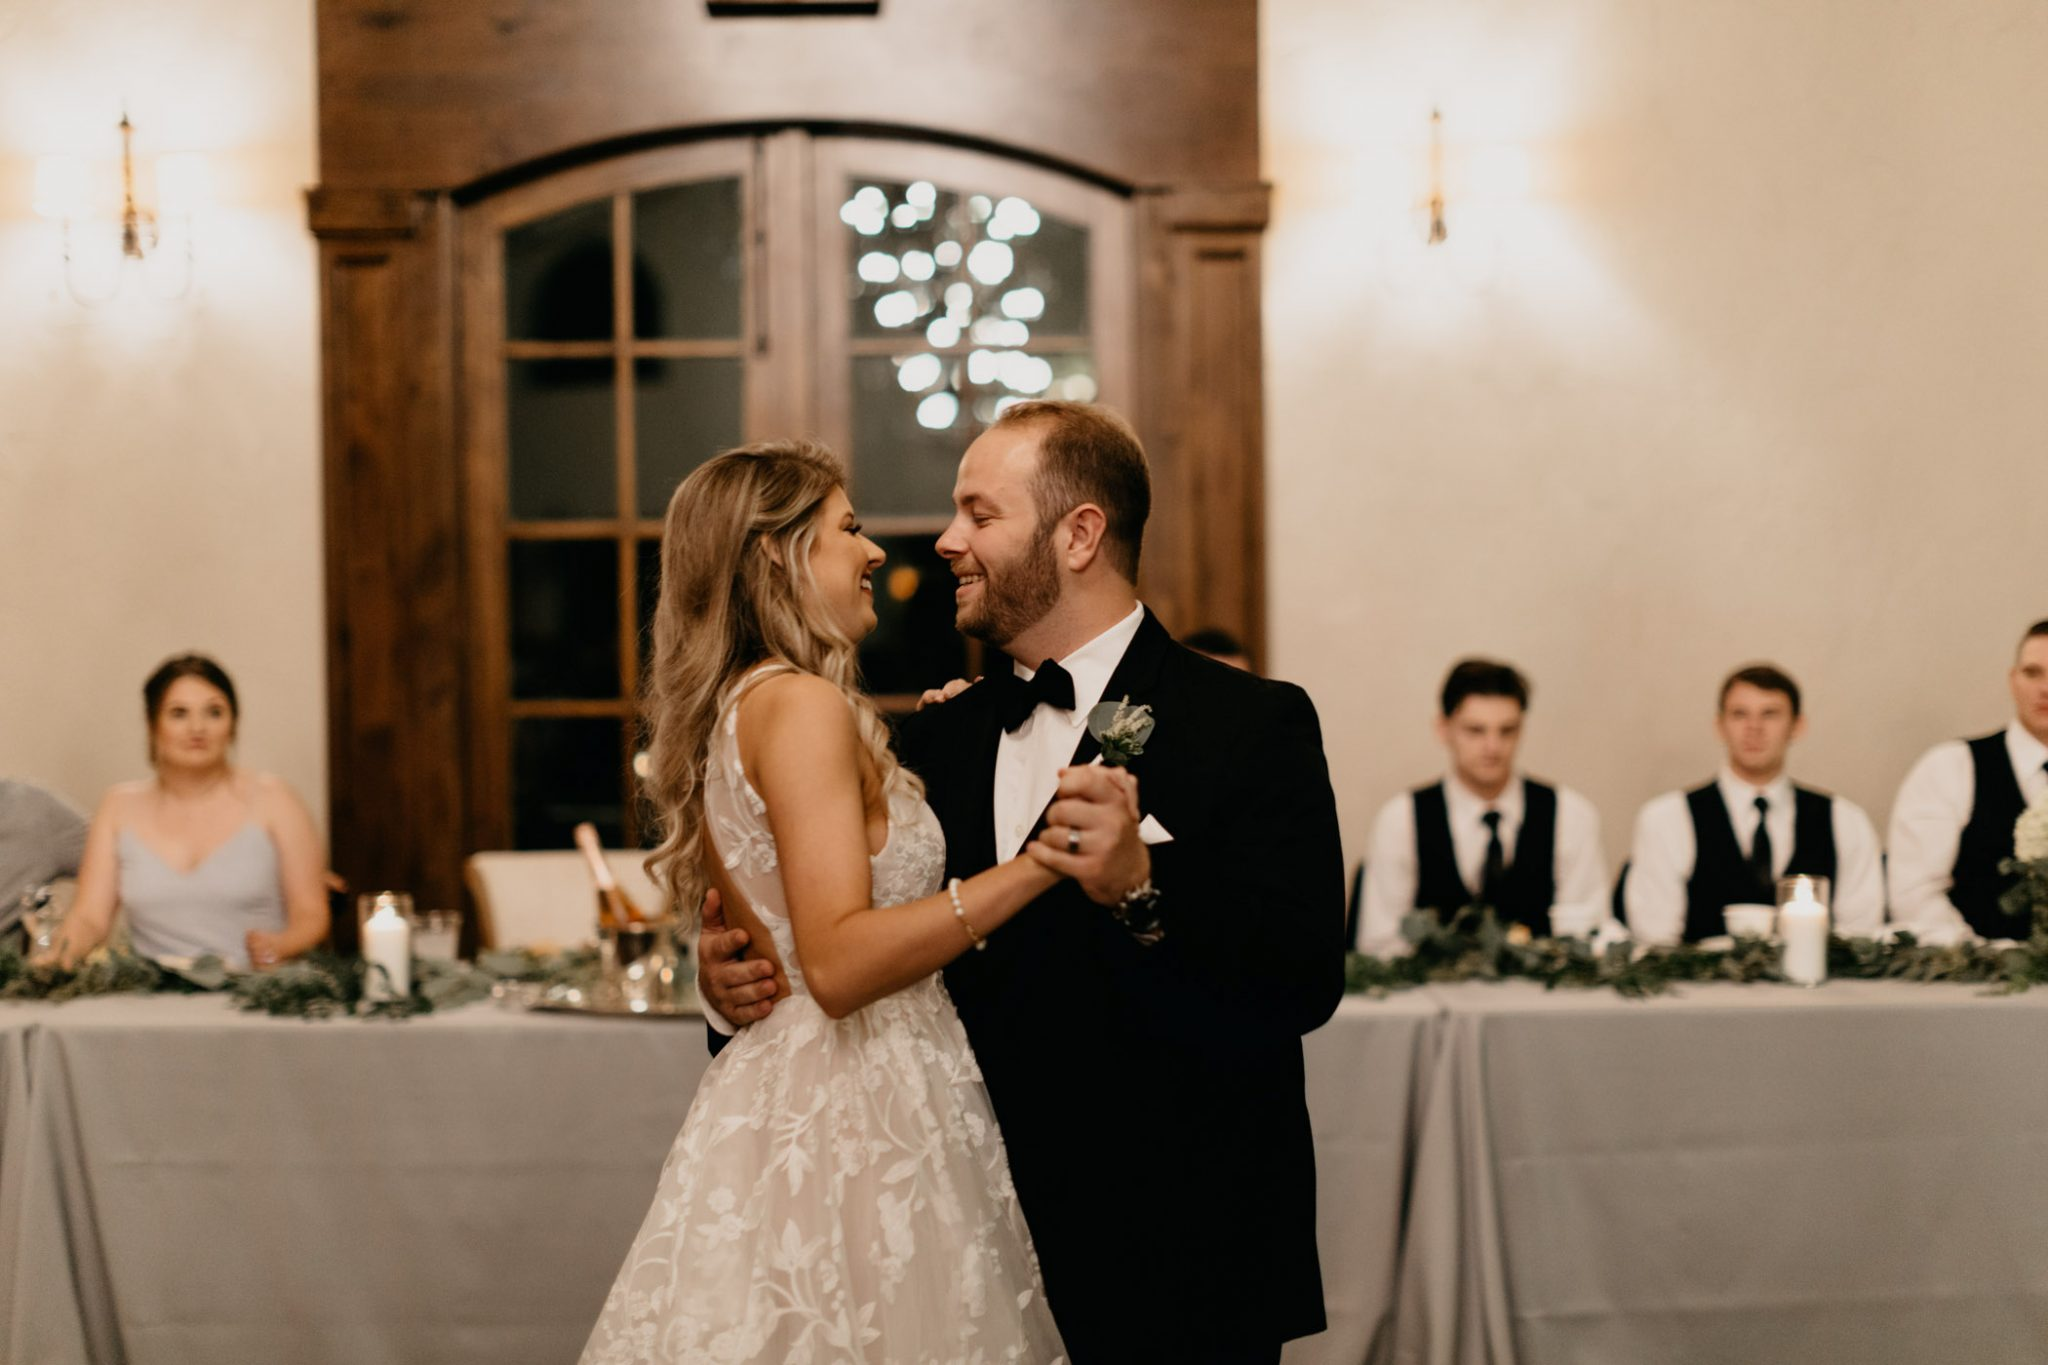 bride and groom first dance at elegant wedding ceremony